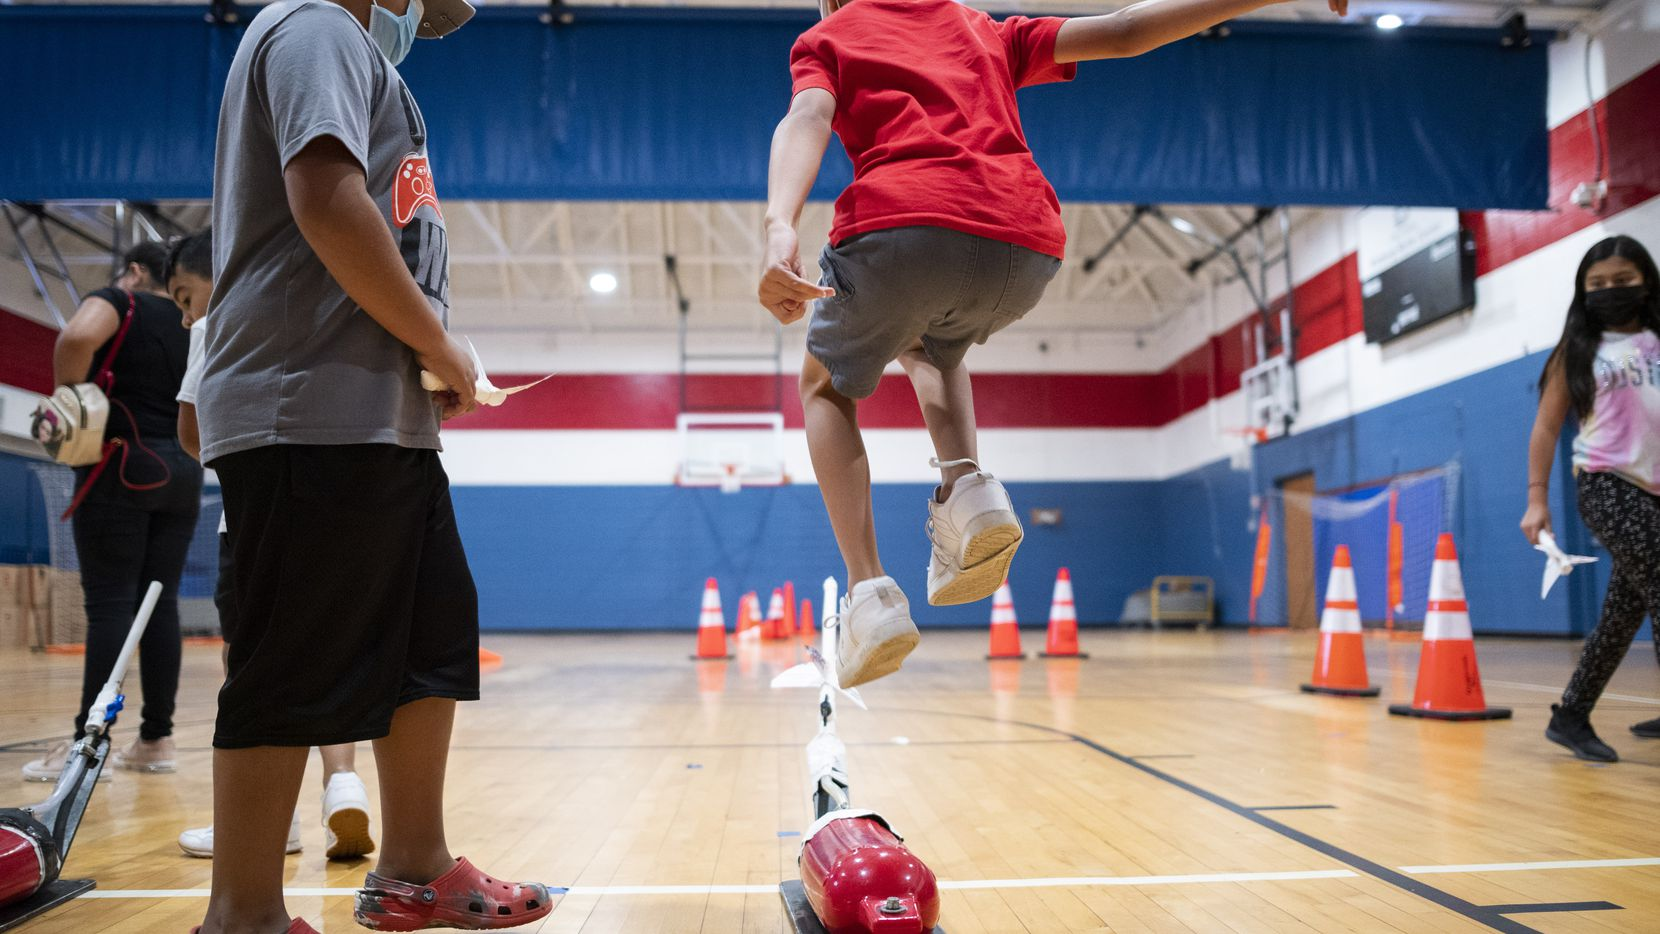 A young boy leaps onto a pouch to propel his paper rocket across a gym at Kleberg-Rylie Recreation Center in far southeast Dallas.